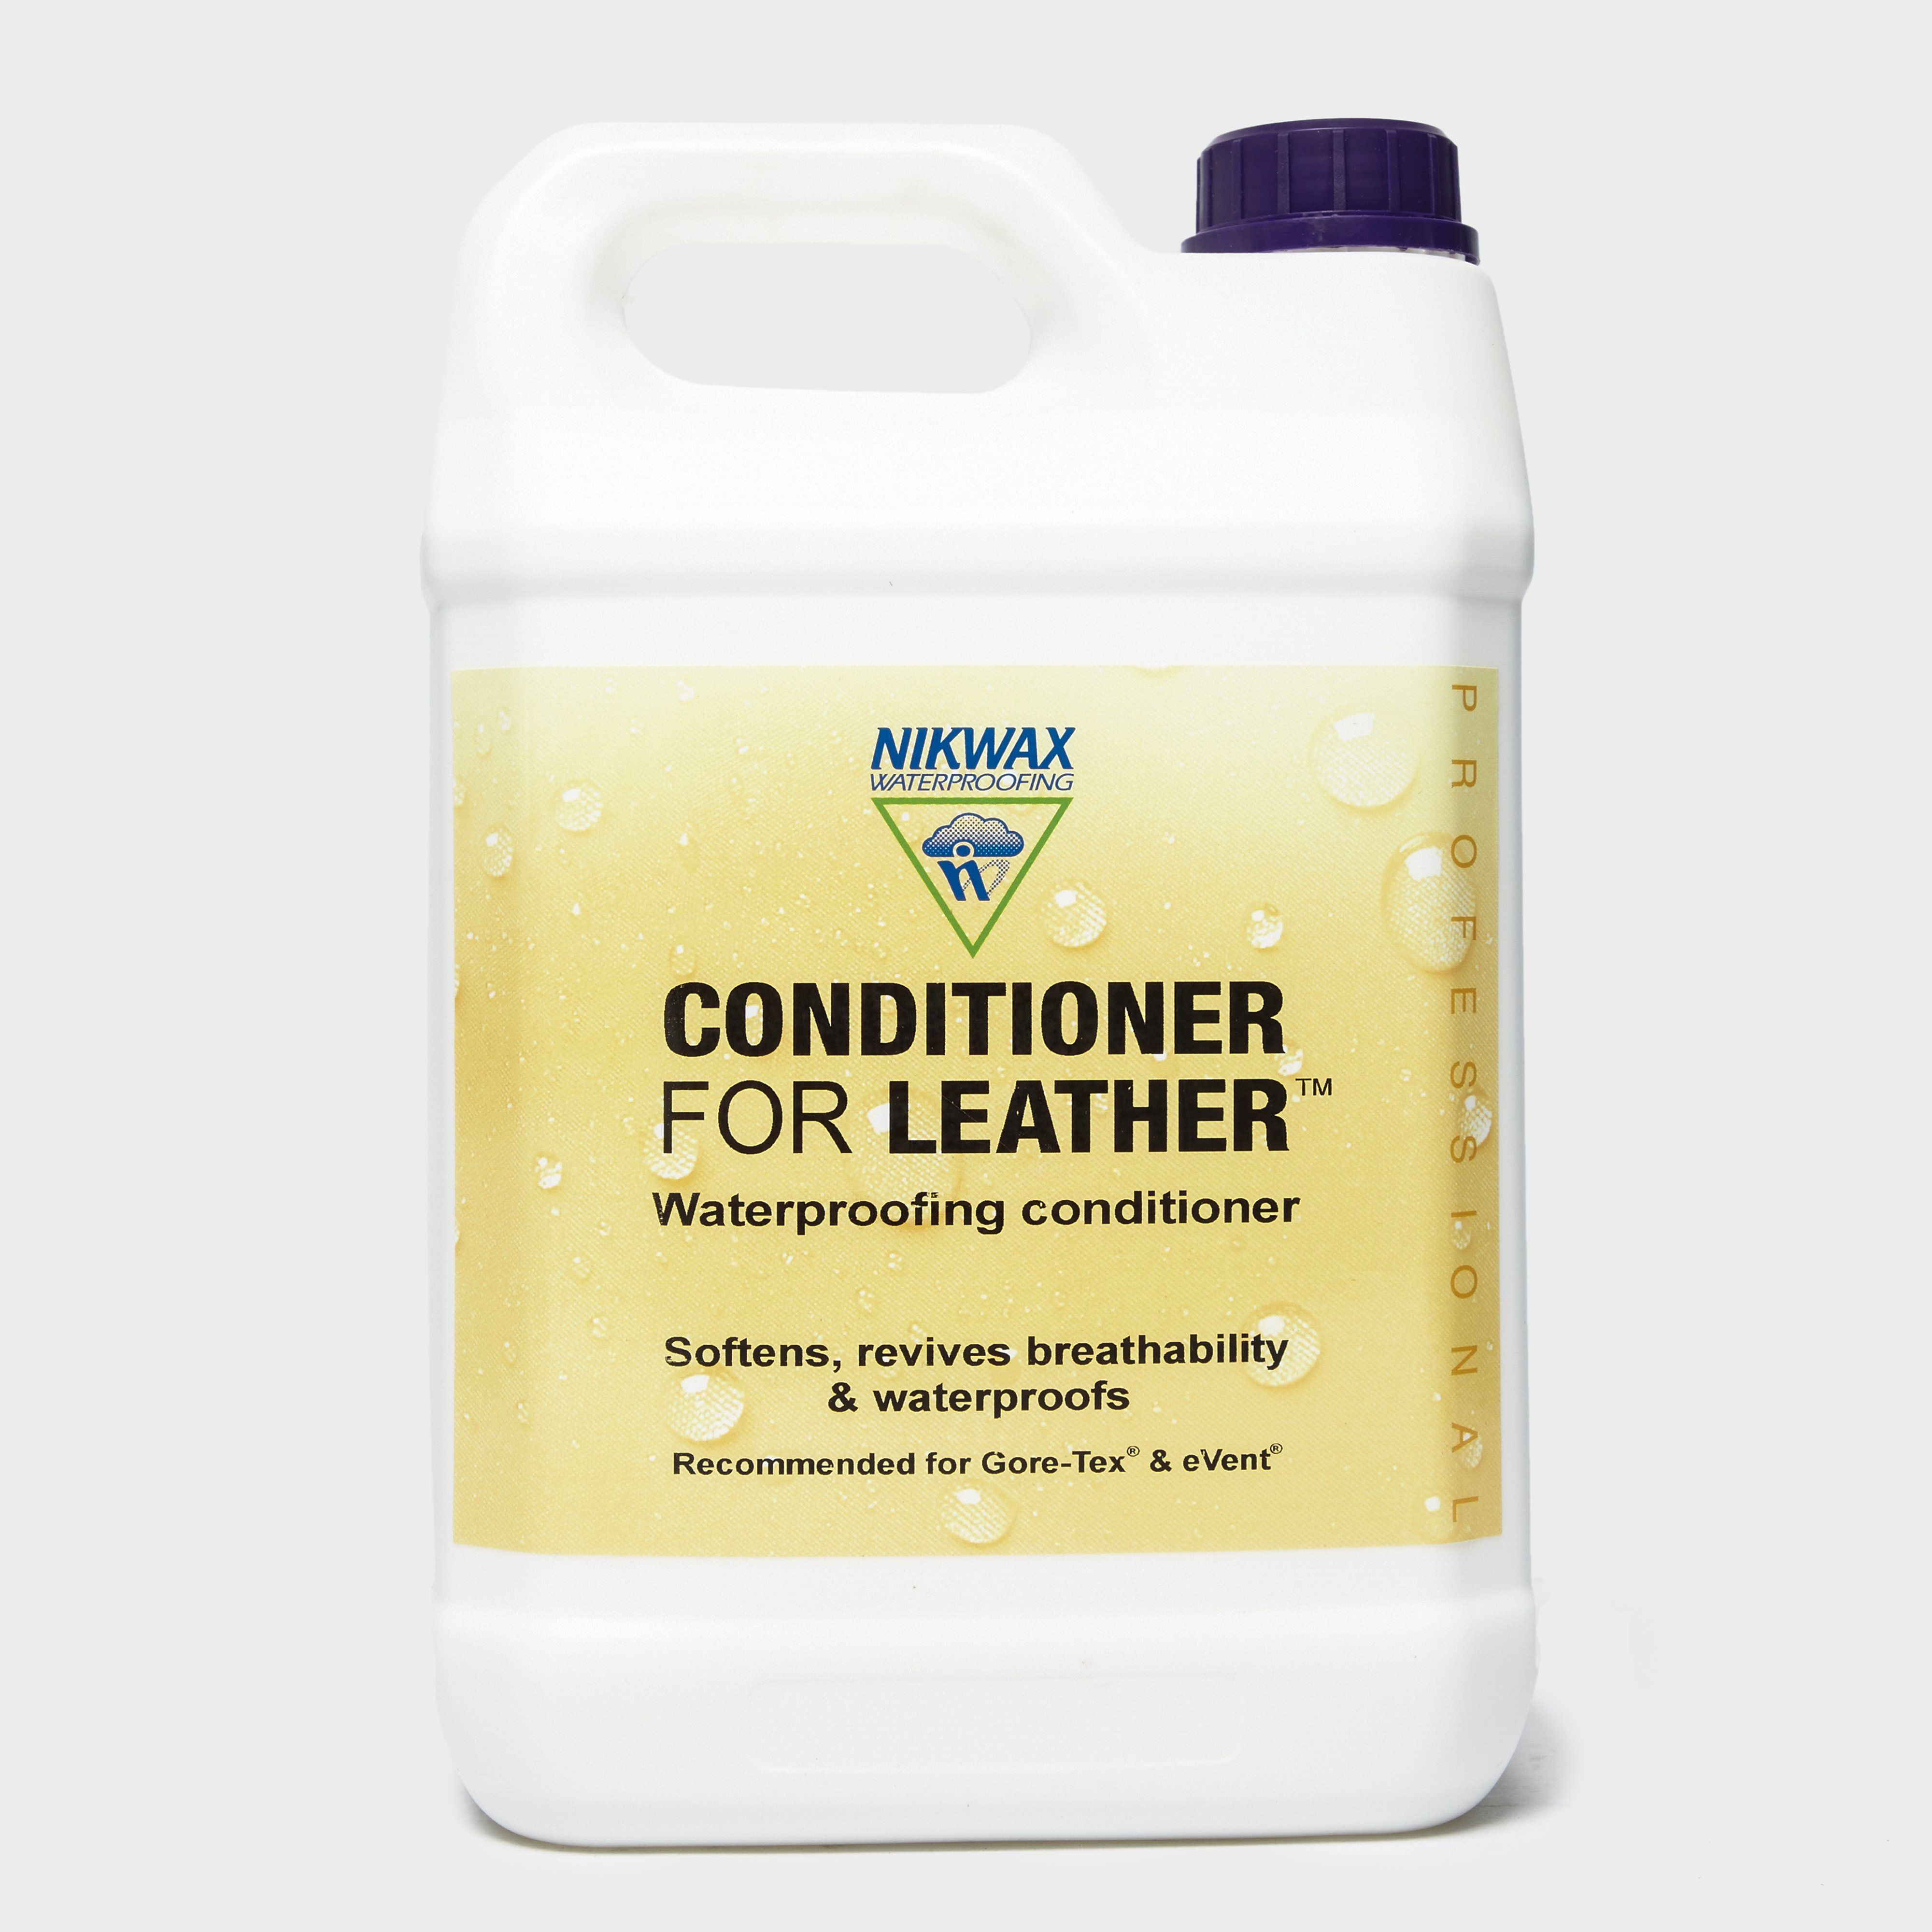 NIKWAX Conditioner for Leather 5L